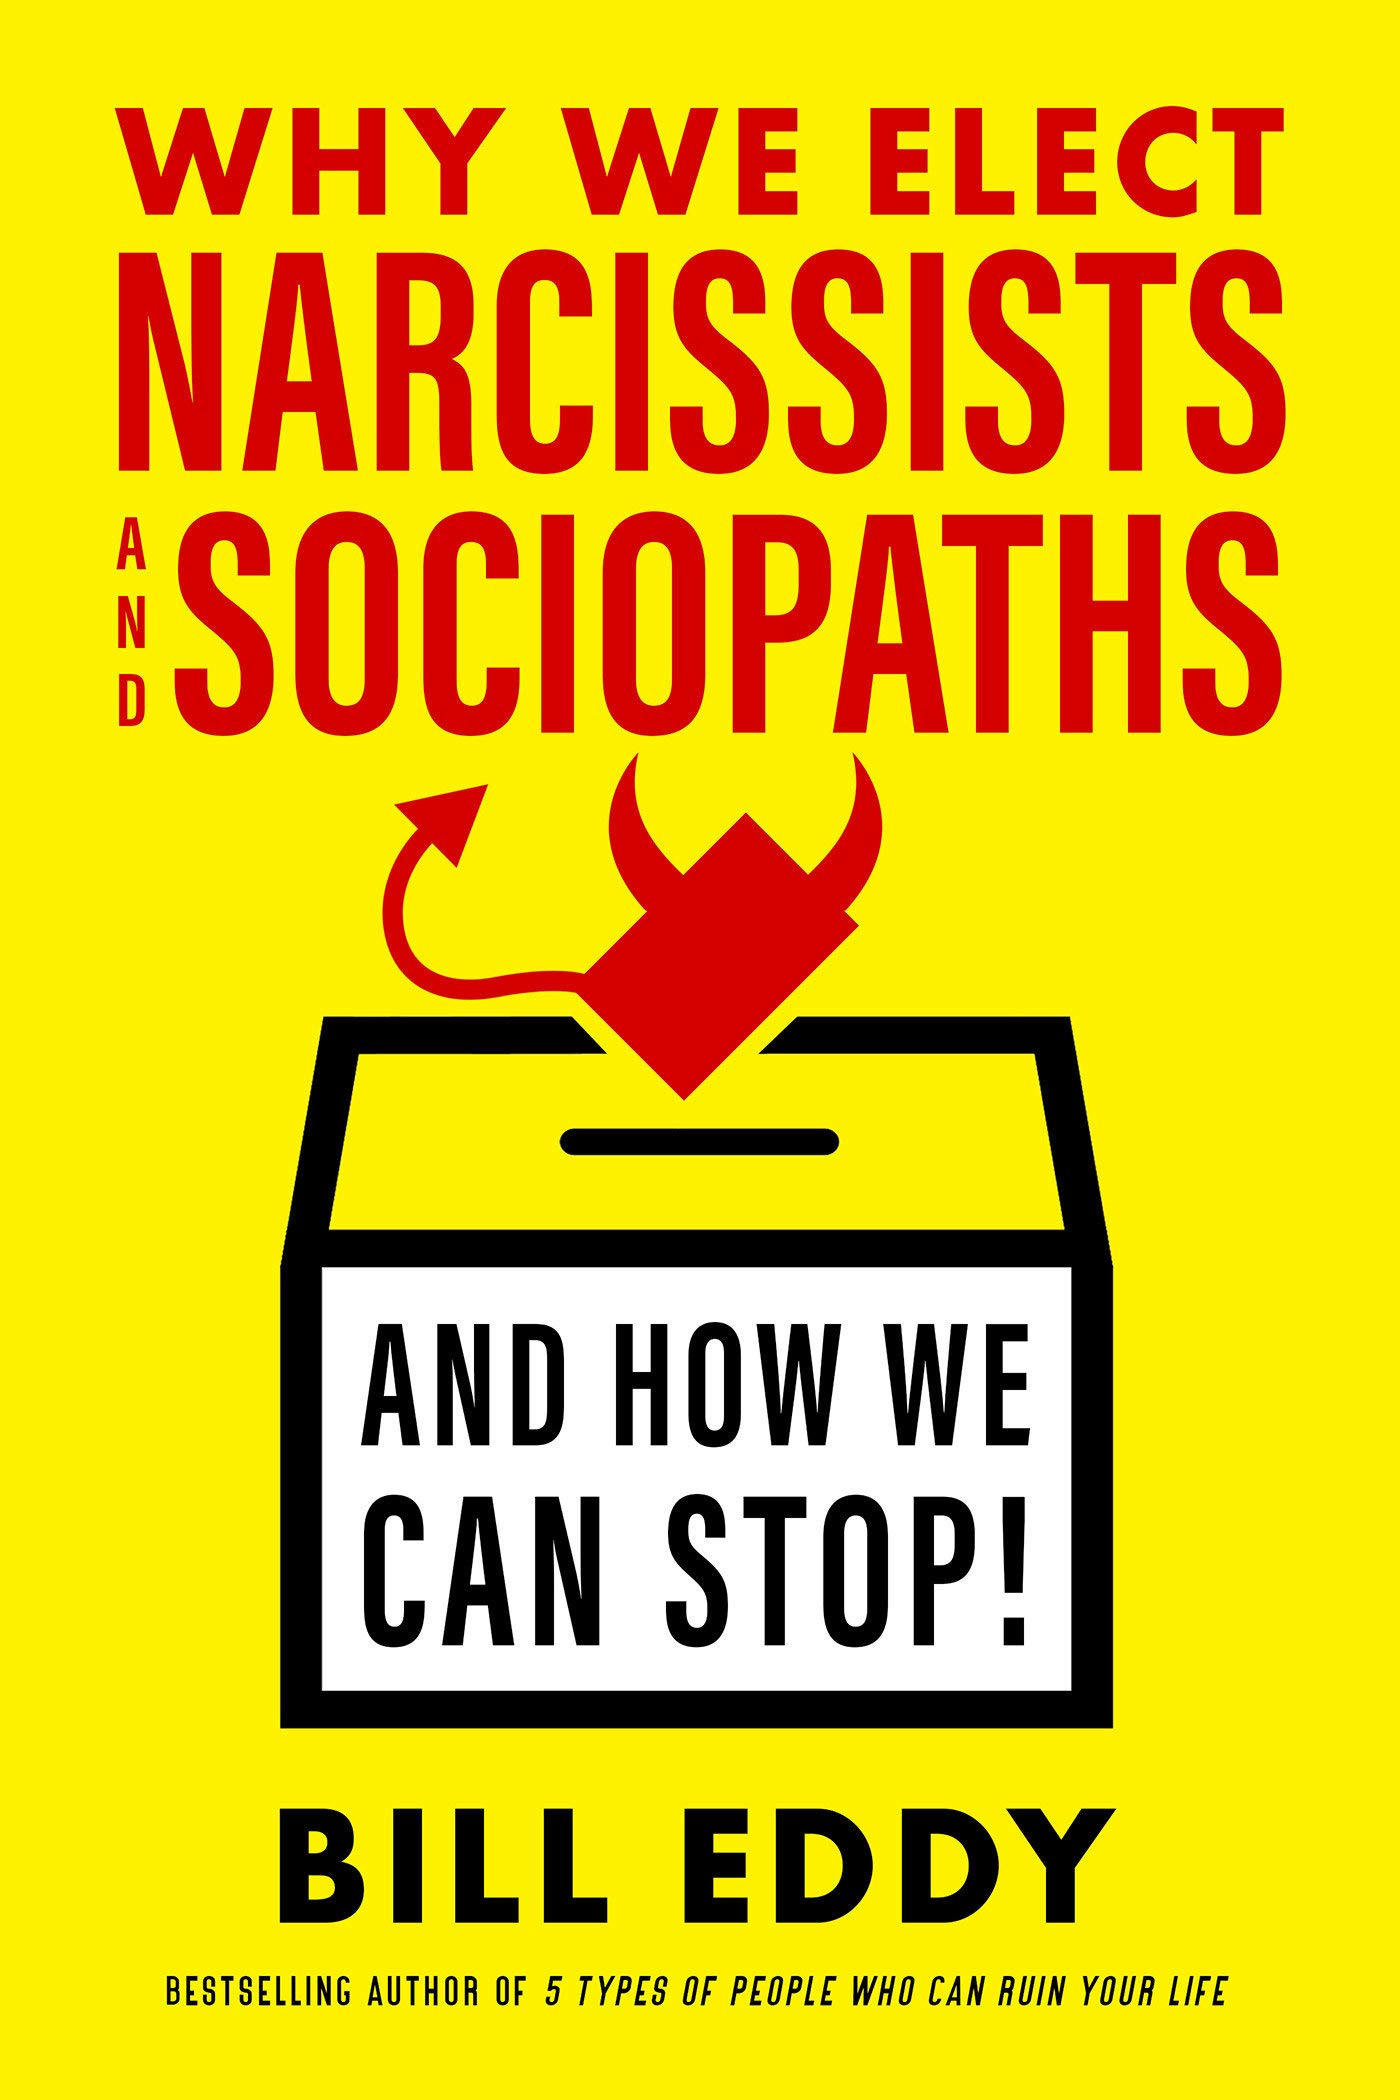 Why We Elect Narcissists and Sociopaths_and How We Can Stop: Bill